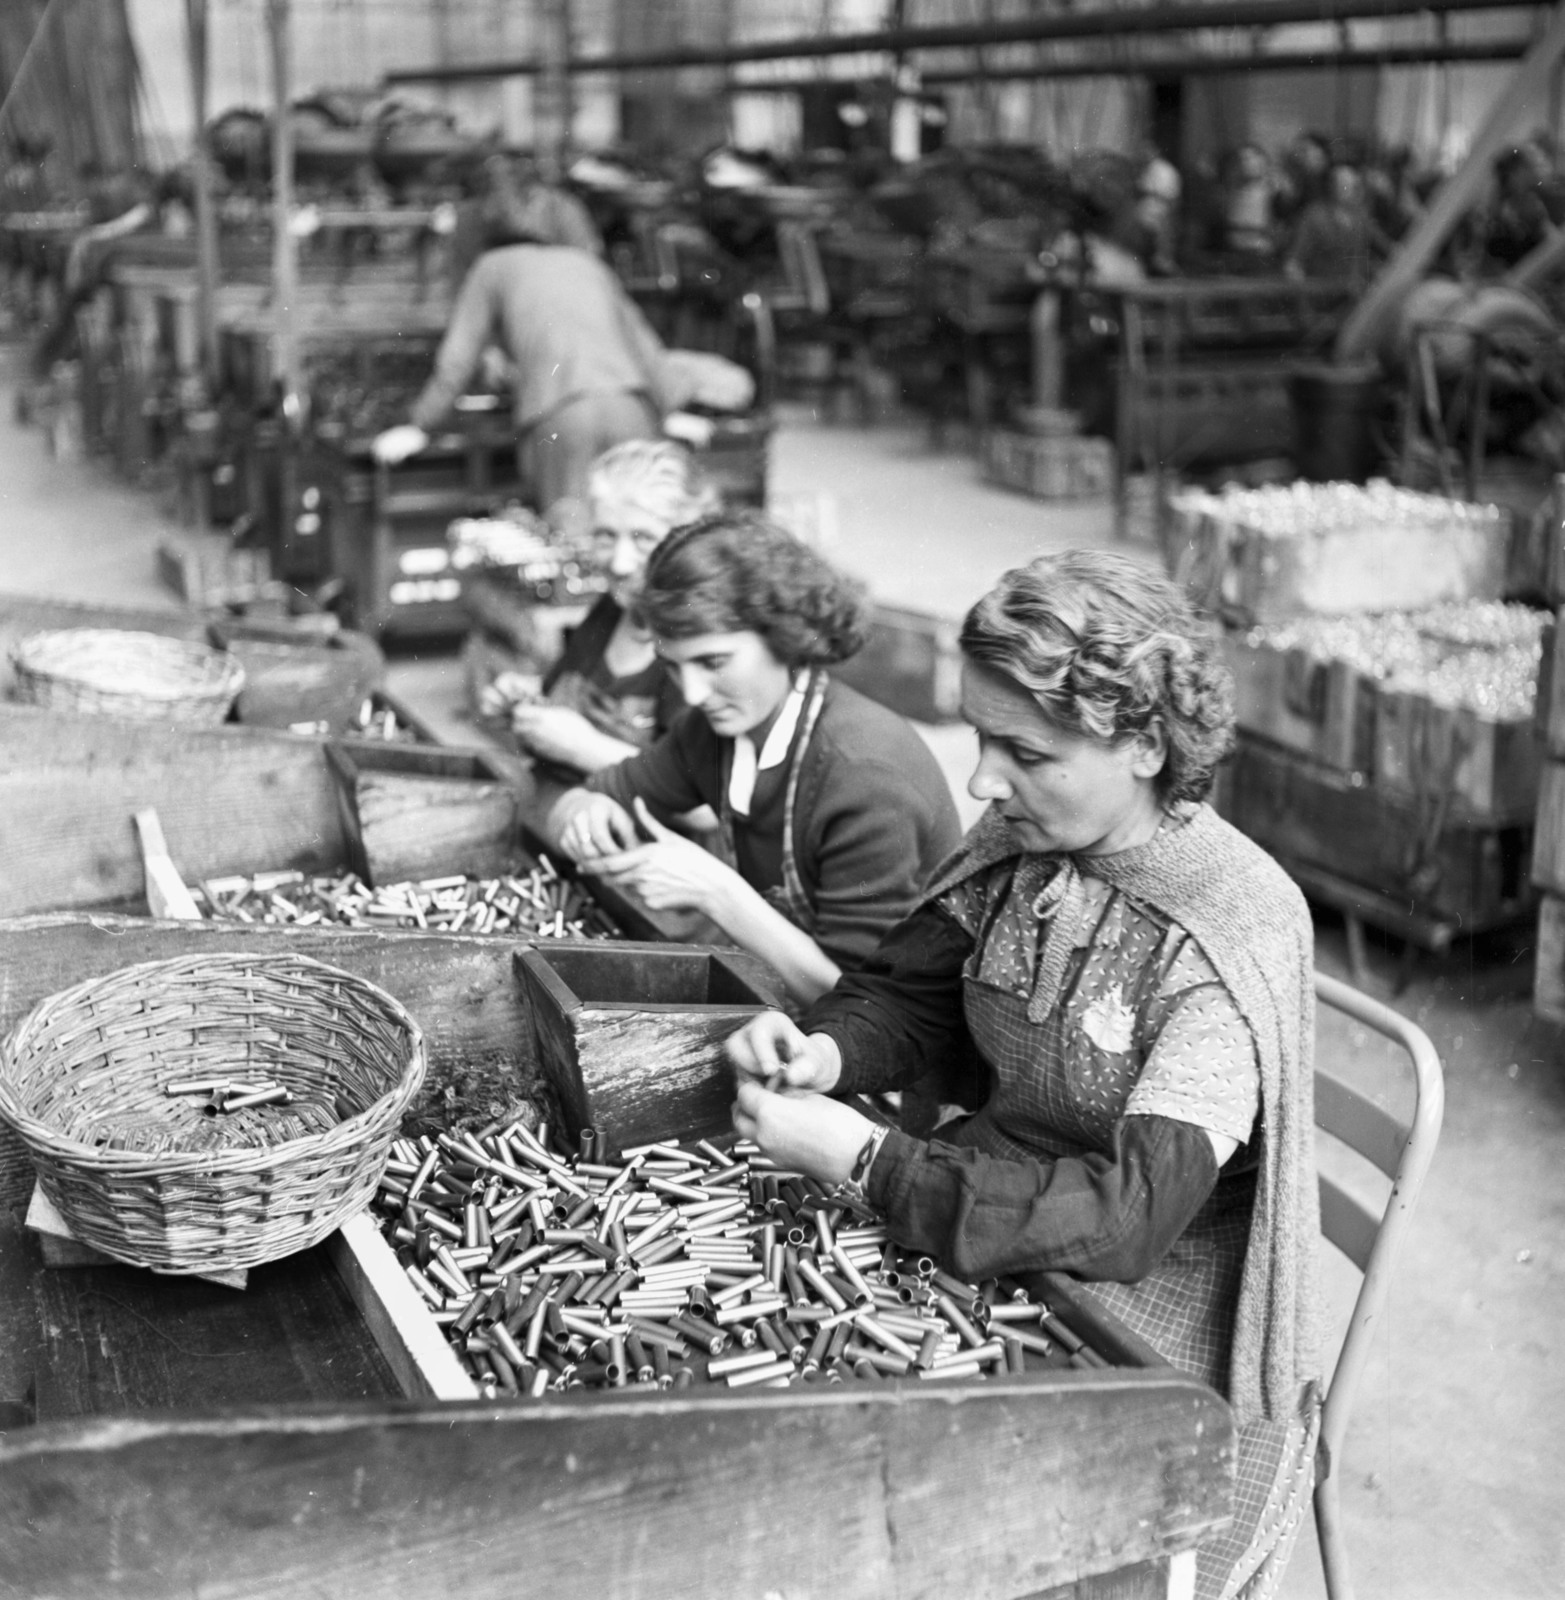 [Steel Replaces Copper in Ammunition - Cartoucherie National de Valence, Rhone River]